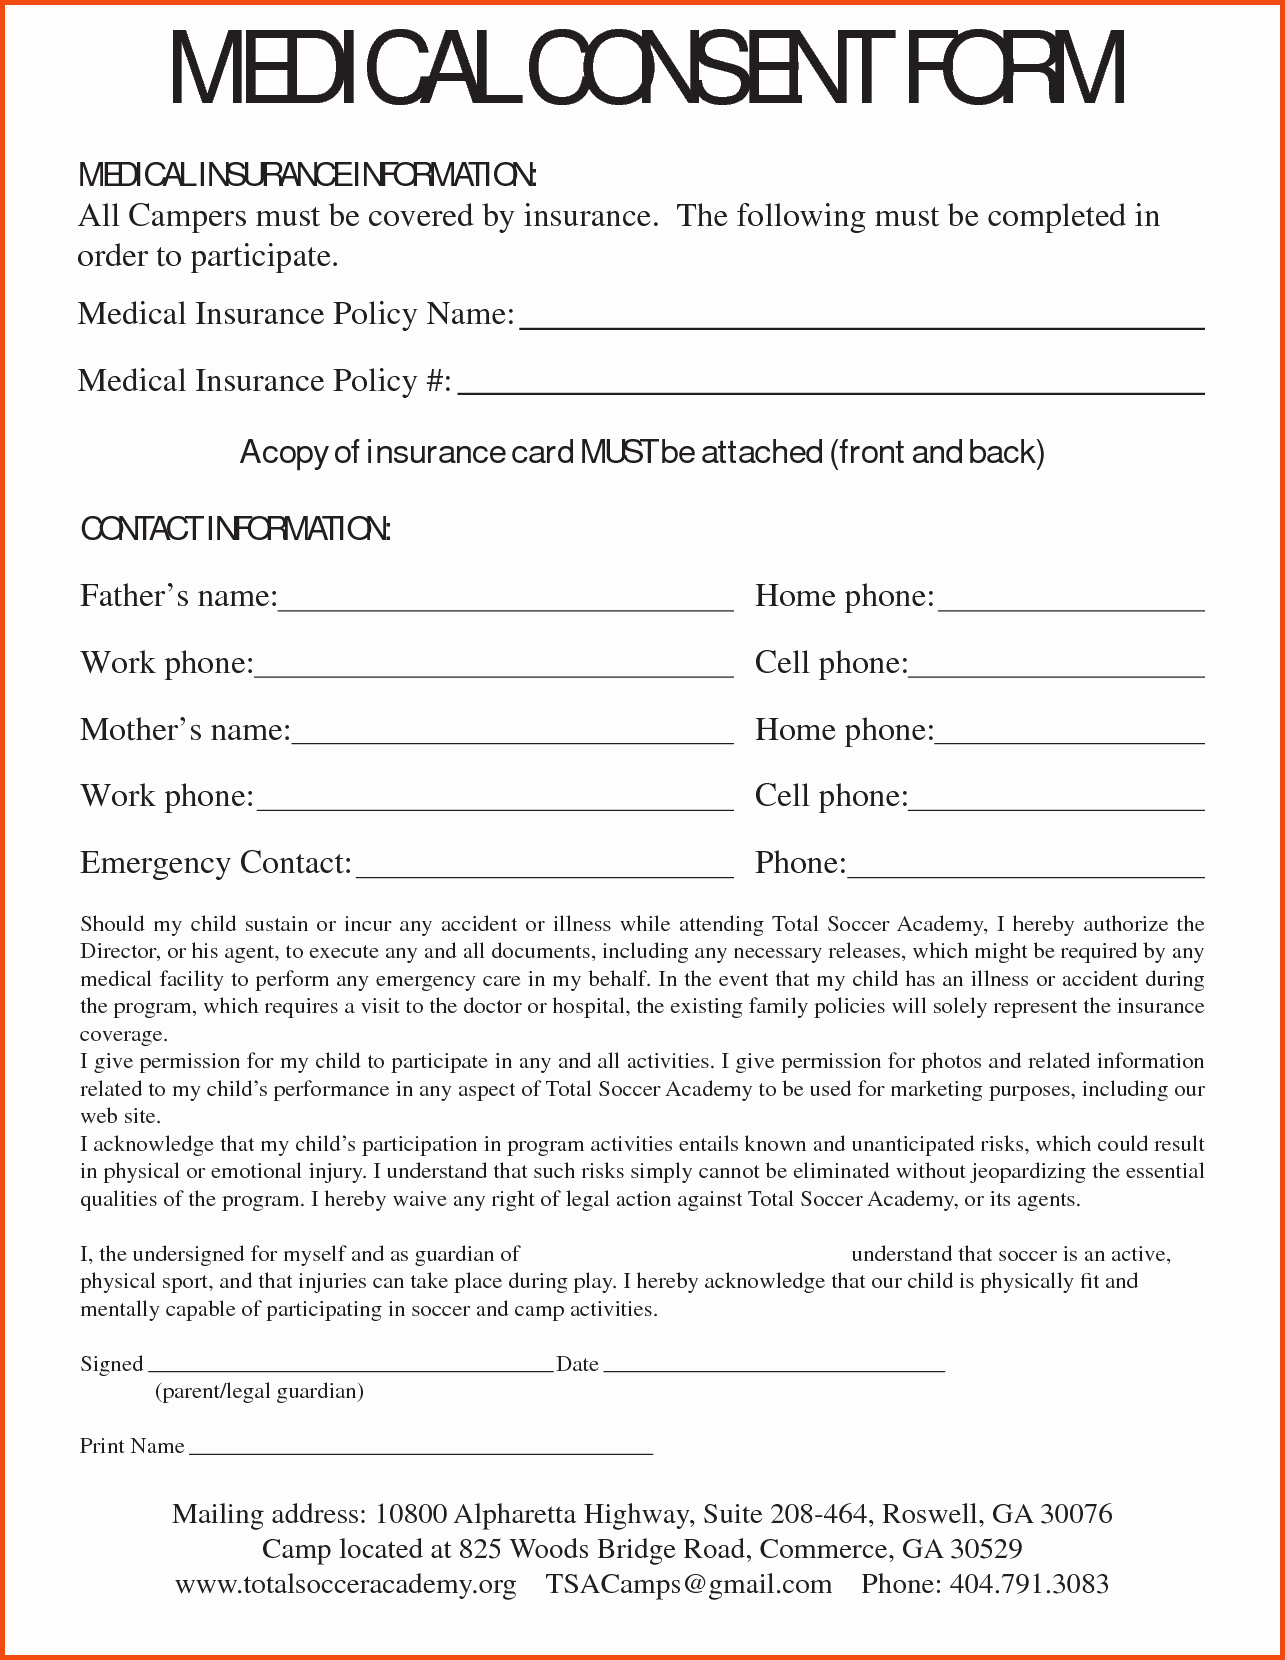 Consent Child Medical Consent form